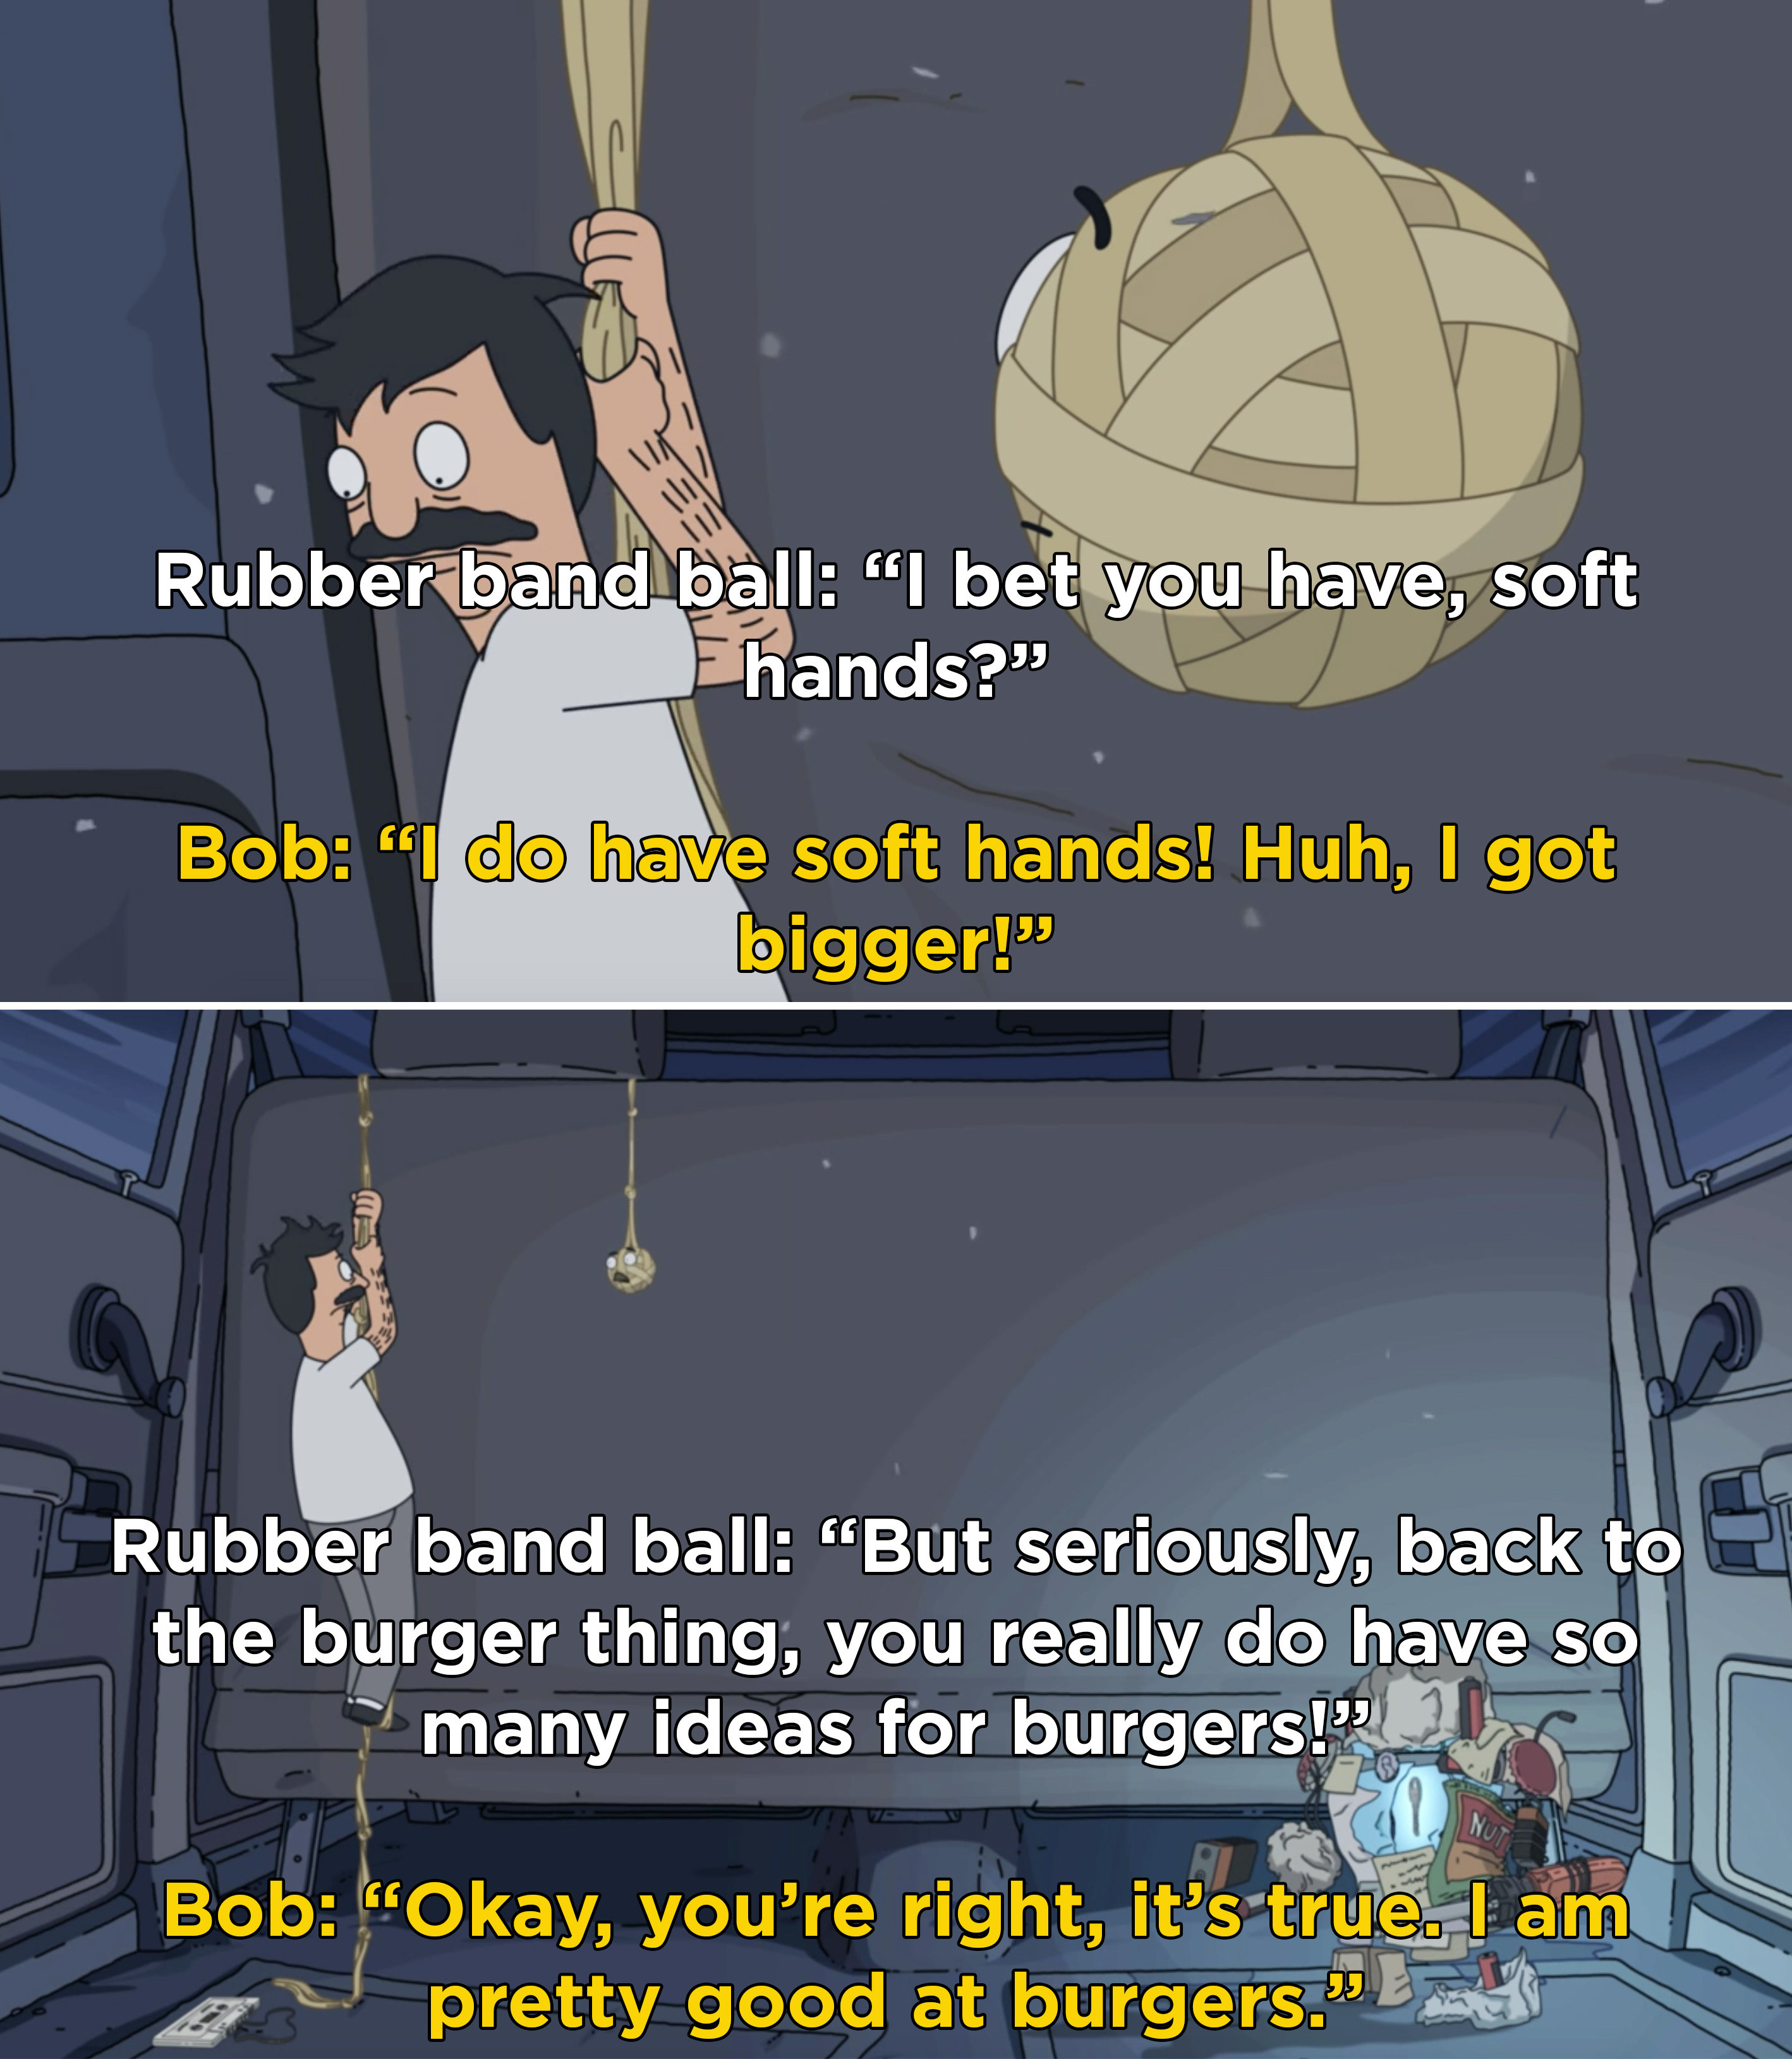 Bob talking to a rubber band ball and realizing that he is special and has great qualities